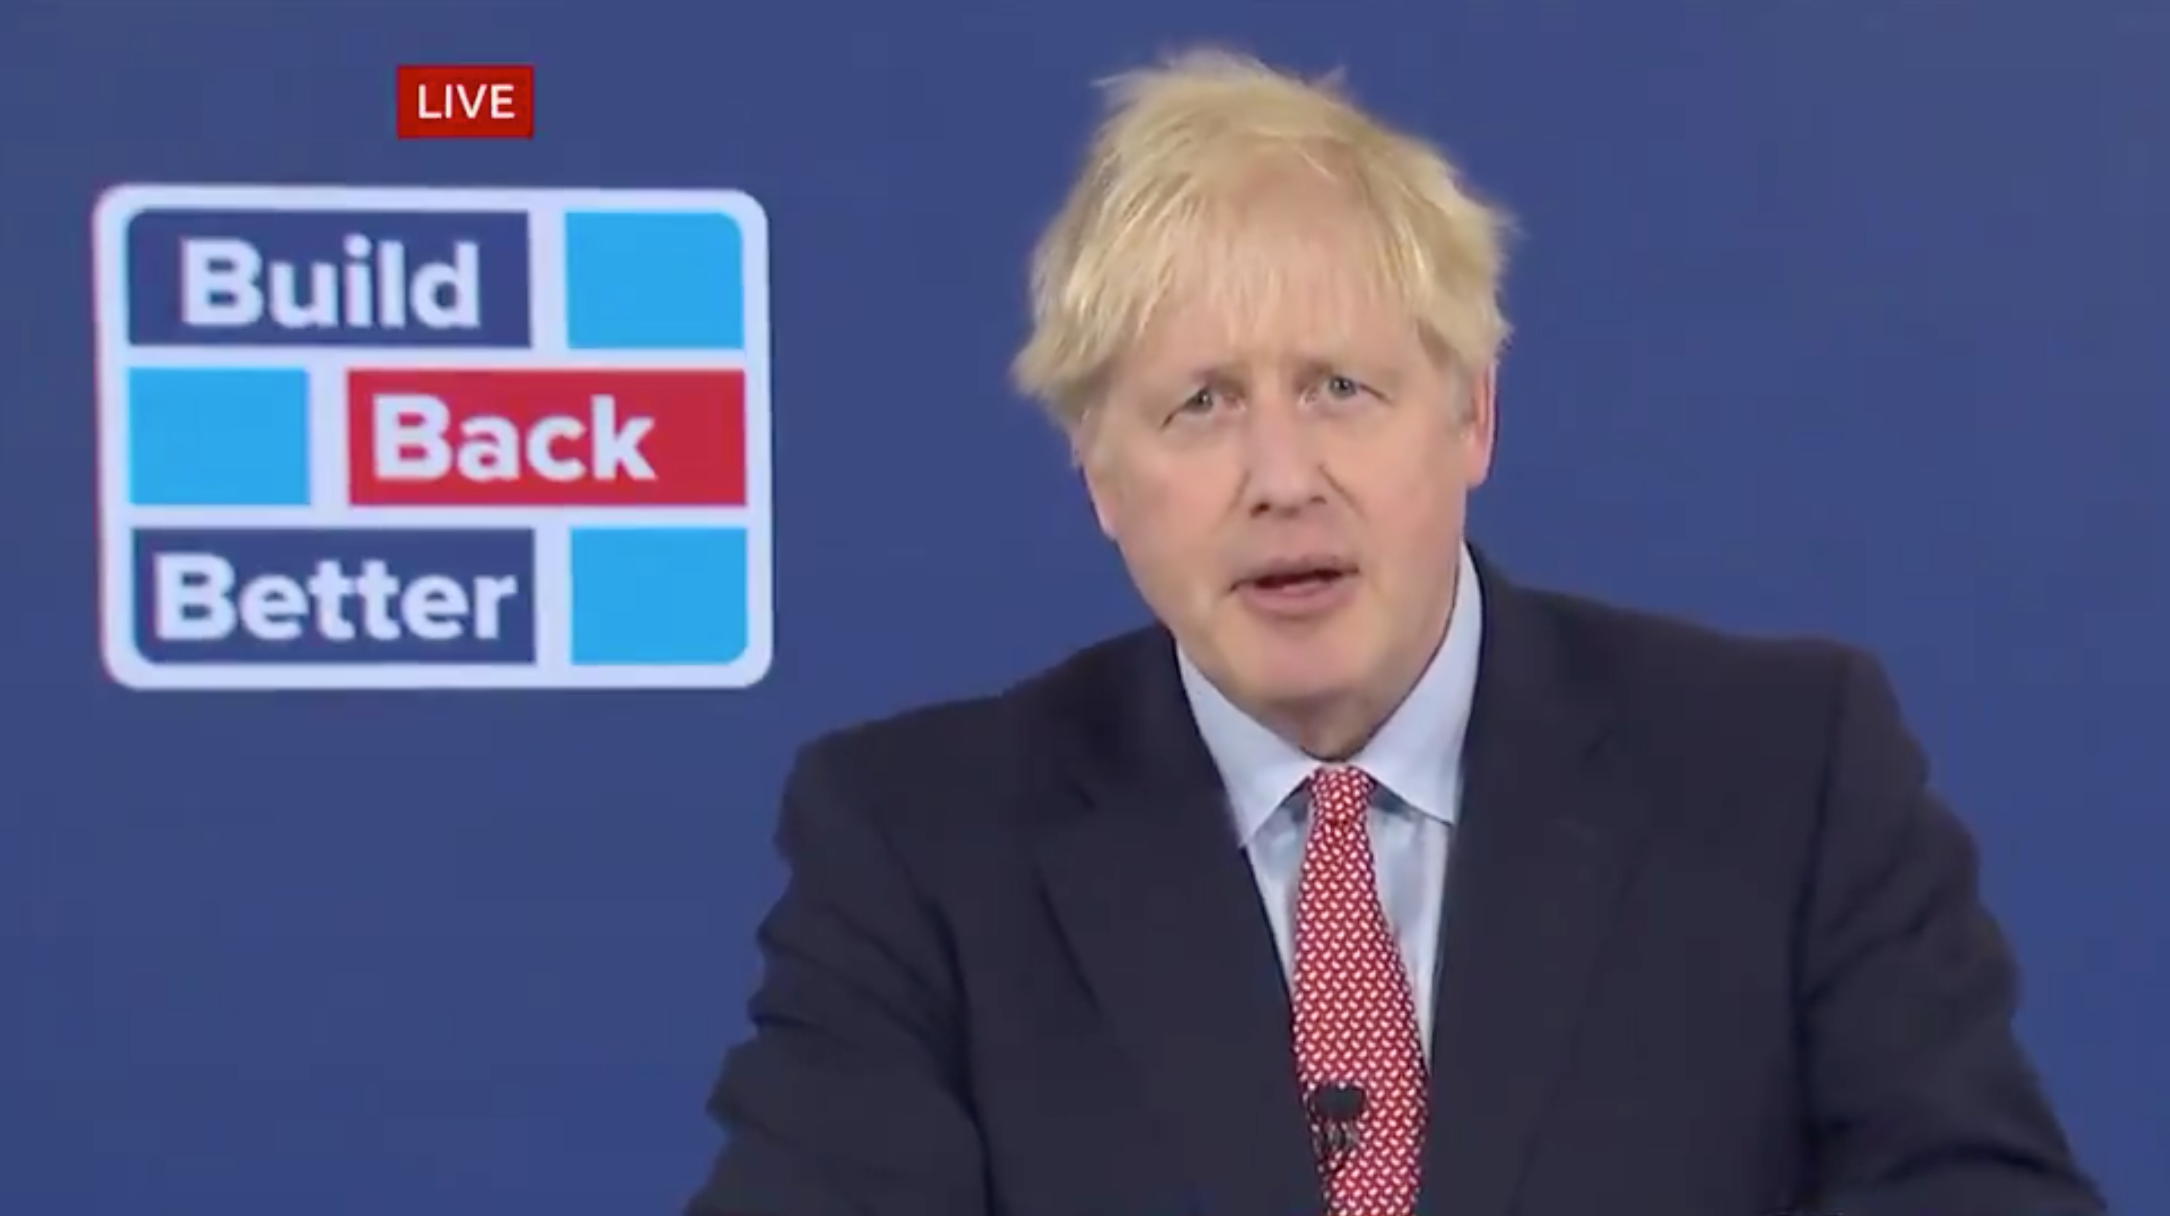 Boris Johnson promises 5% mortgage deposits for First Time Buyers in 'generation buy' scheme, The Manc